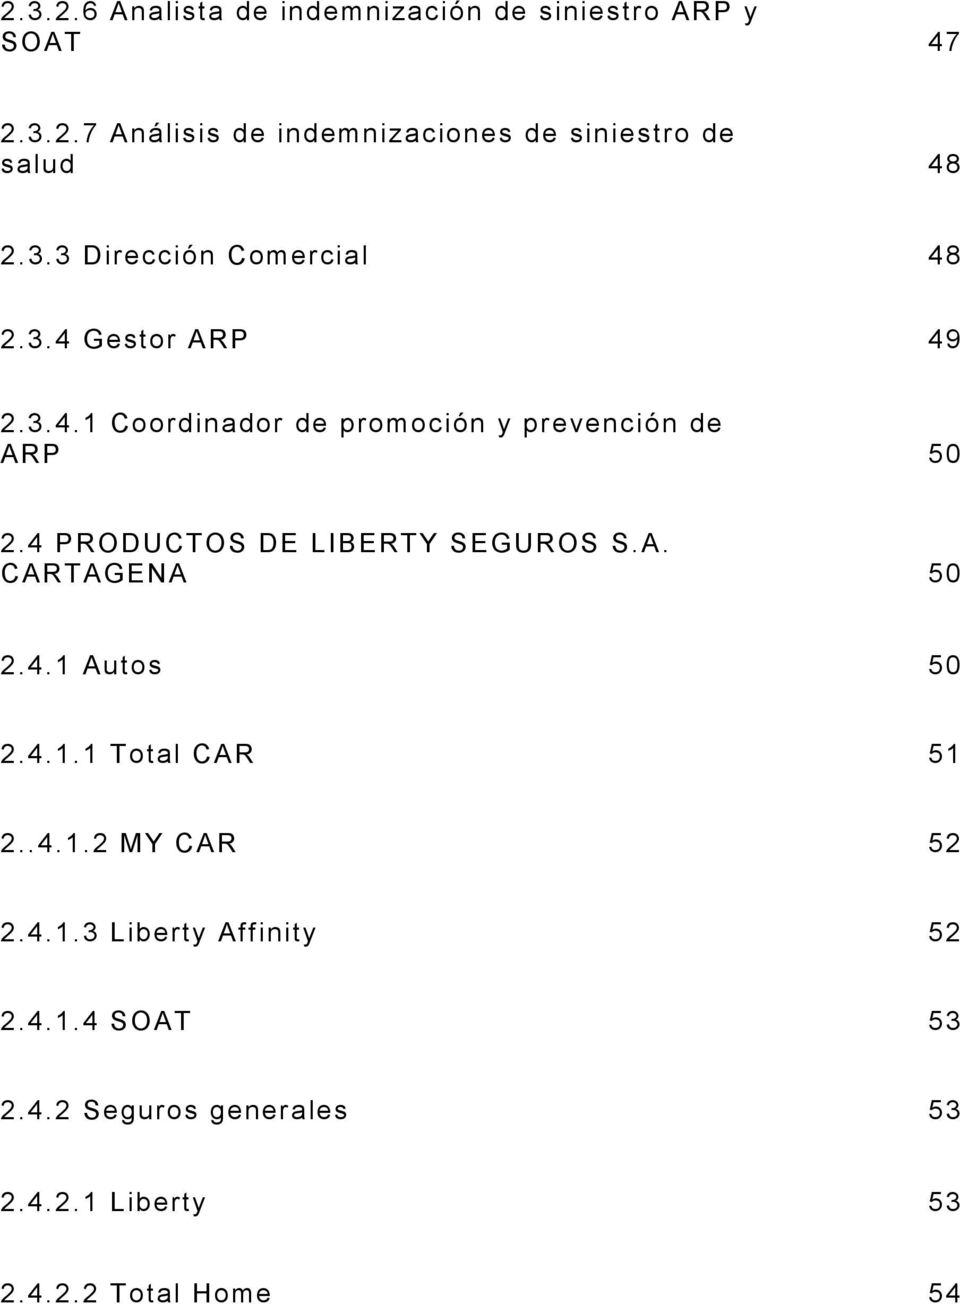 4 PRODUCTOS DE LIBERTY SEGUROS S.A. CARTAGENA 50 2.4.1 Autos 50 2.4.1.1 Total CAR 51 2..4.1.2 MY CAR 52 2.4.1.3 Liberty Affinity 52 2.